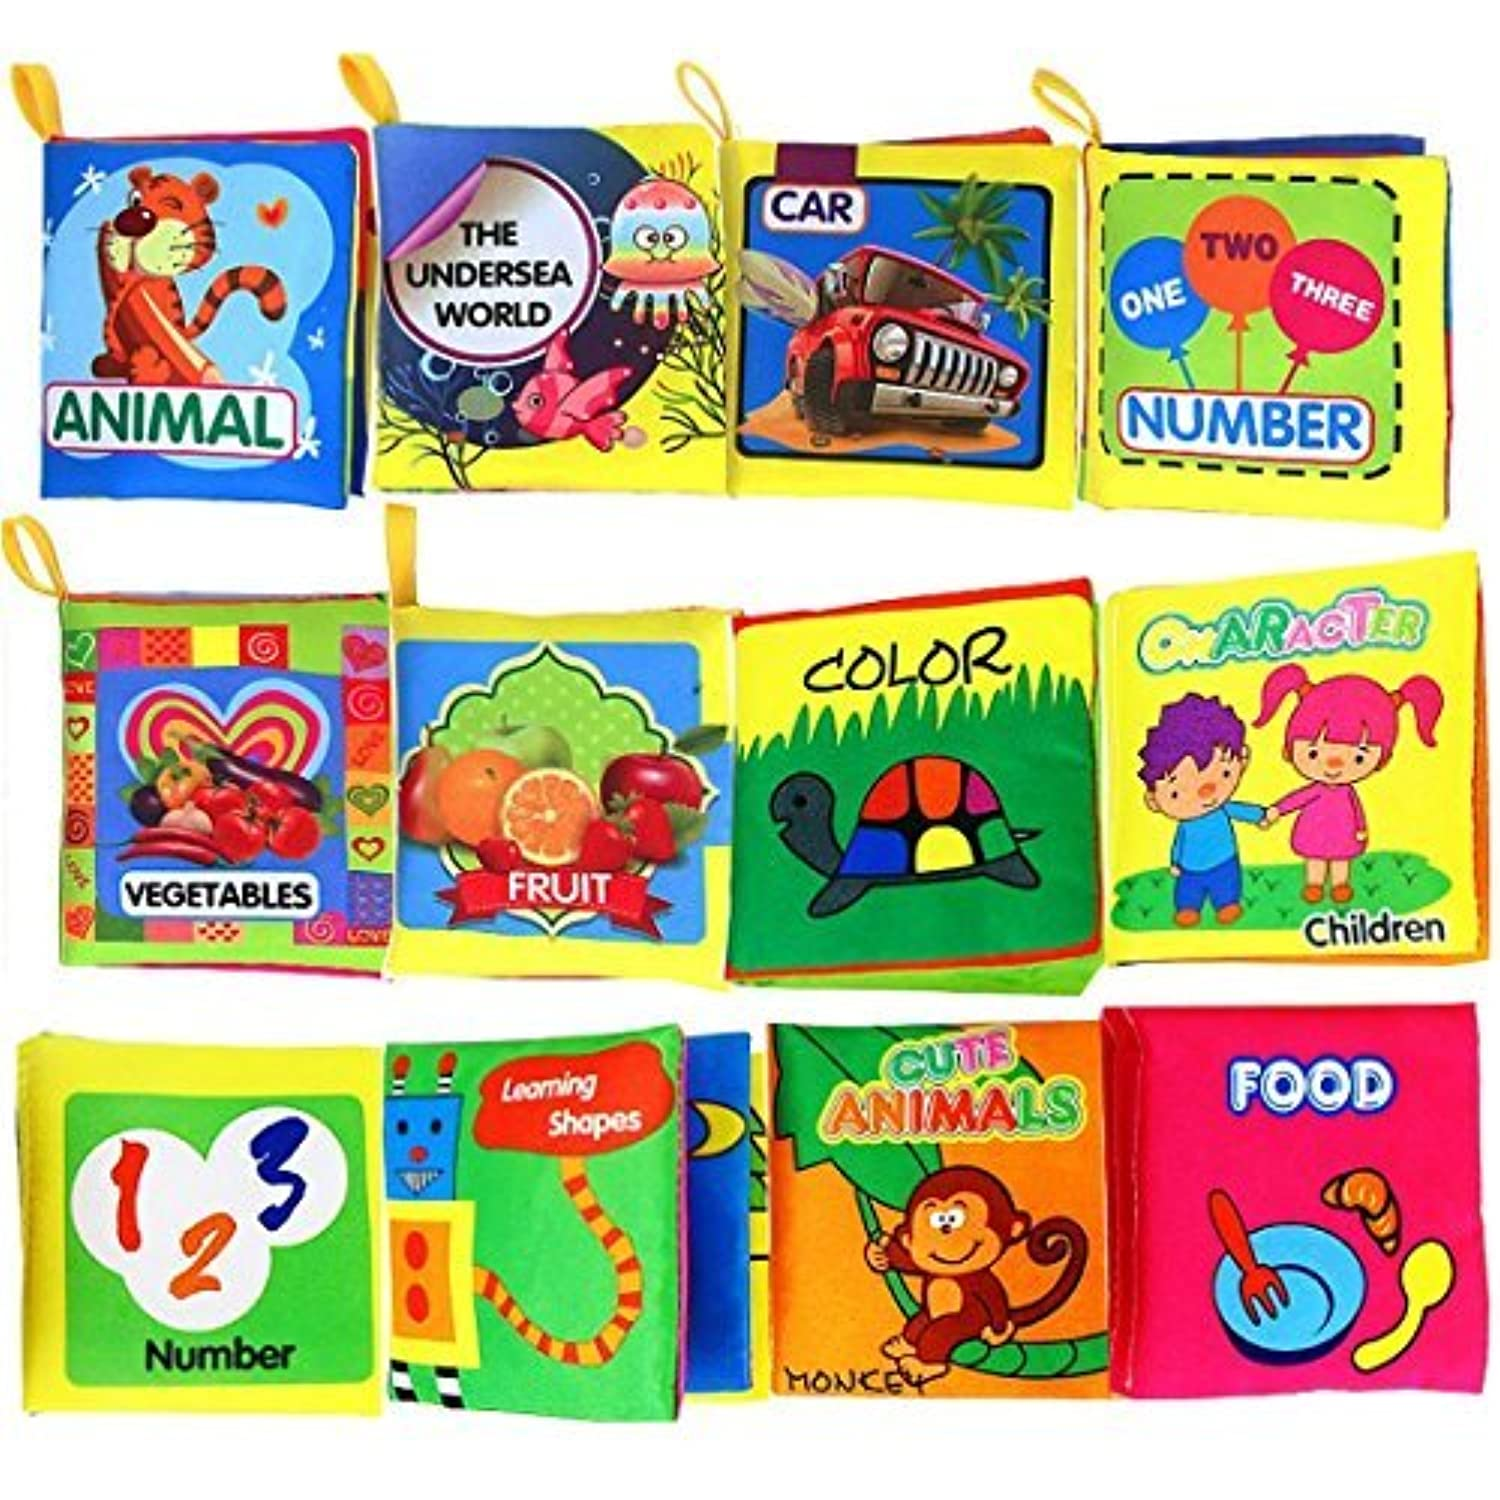 Coolplay Baby's Soft Cloth Book Set- Squeak, Rattle, Crinkle (Pack of 12)